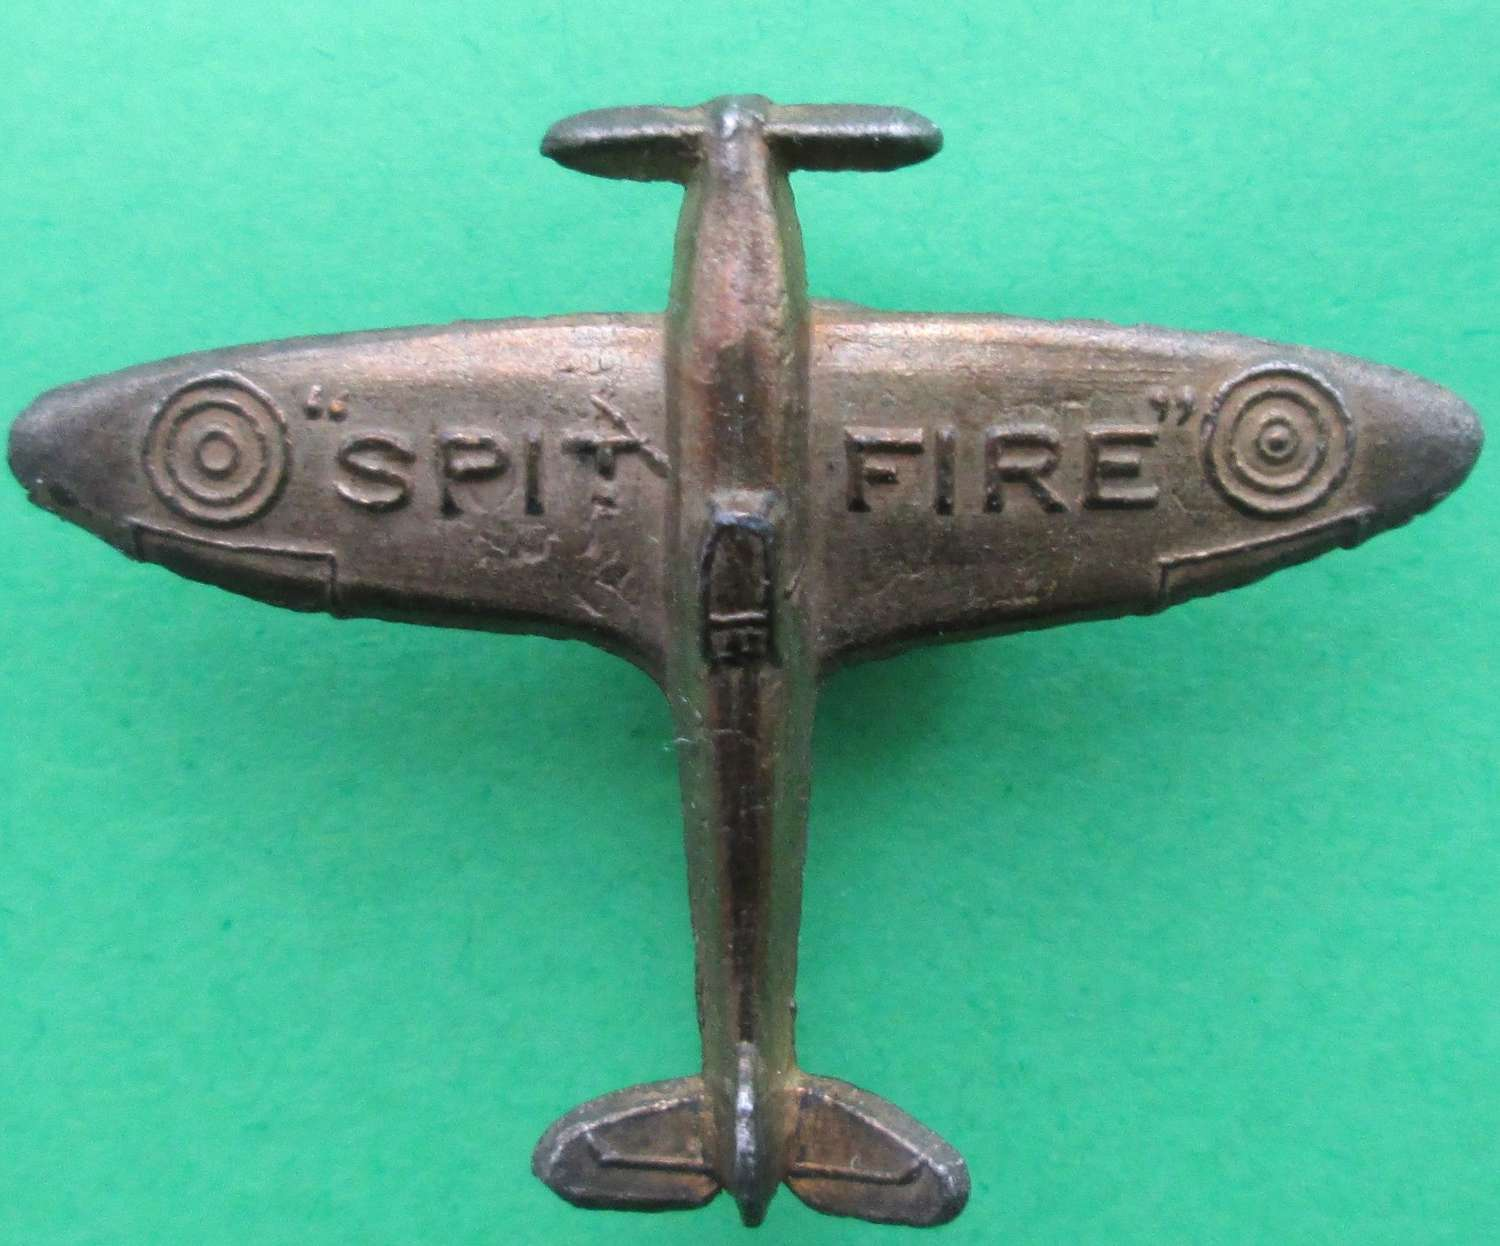 A GOOD WWII PERIOD SPITFIRE FUND BADGE